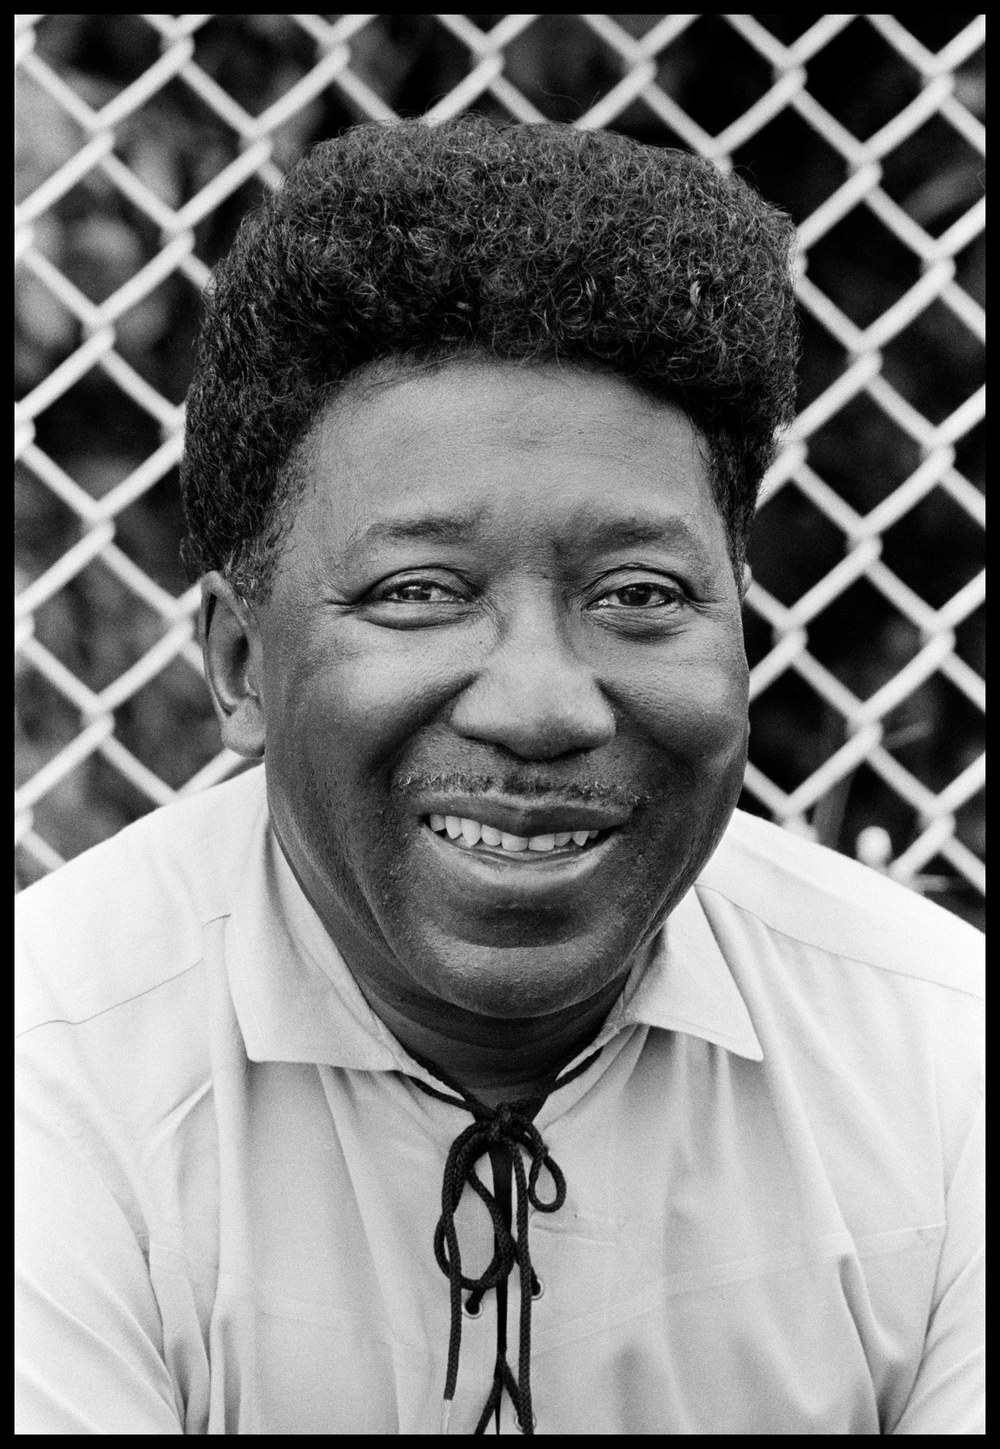 Muddy_Waters_1.jpg